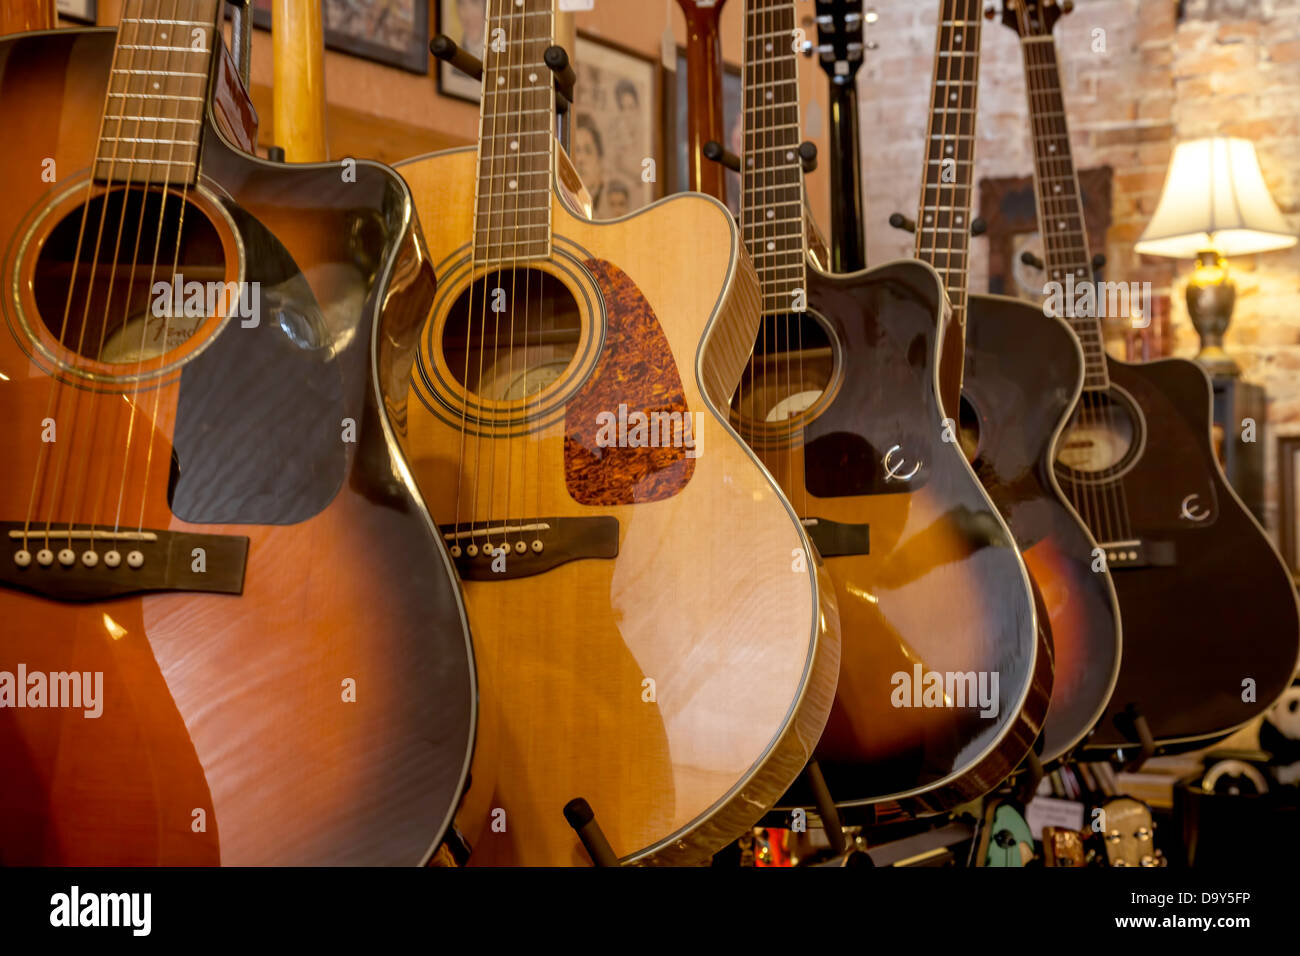 fender and alvarez acoustic guitars on display in a vintage music stock photo 57760074 alamy. Black Bedroom Furniture Sets. Home Design Ideas